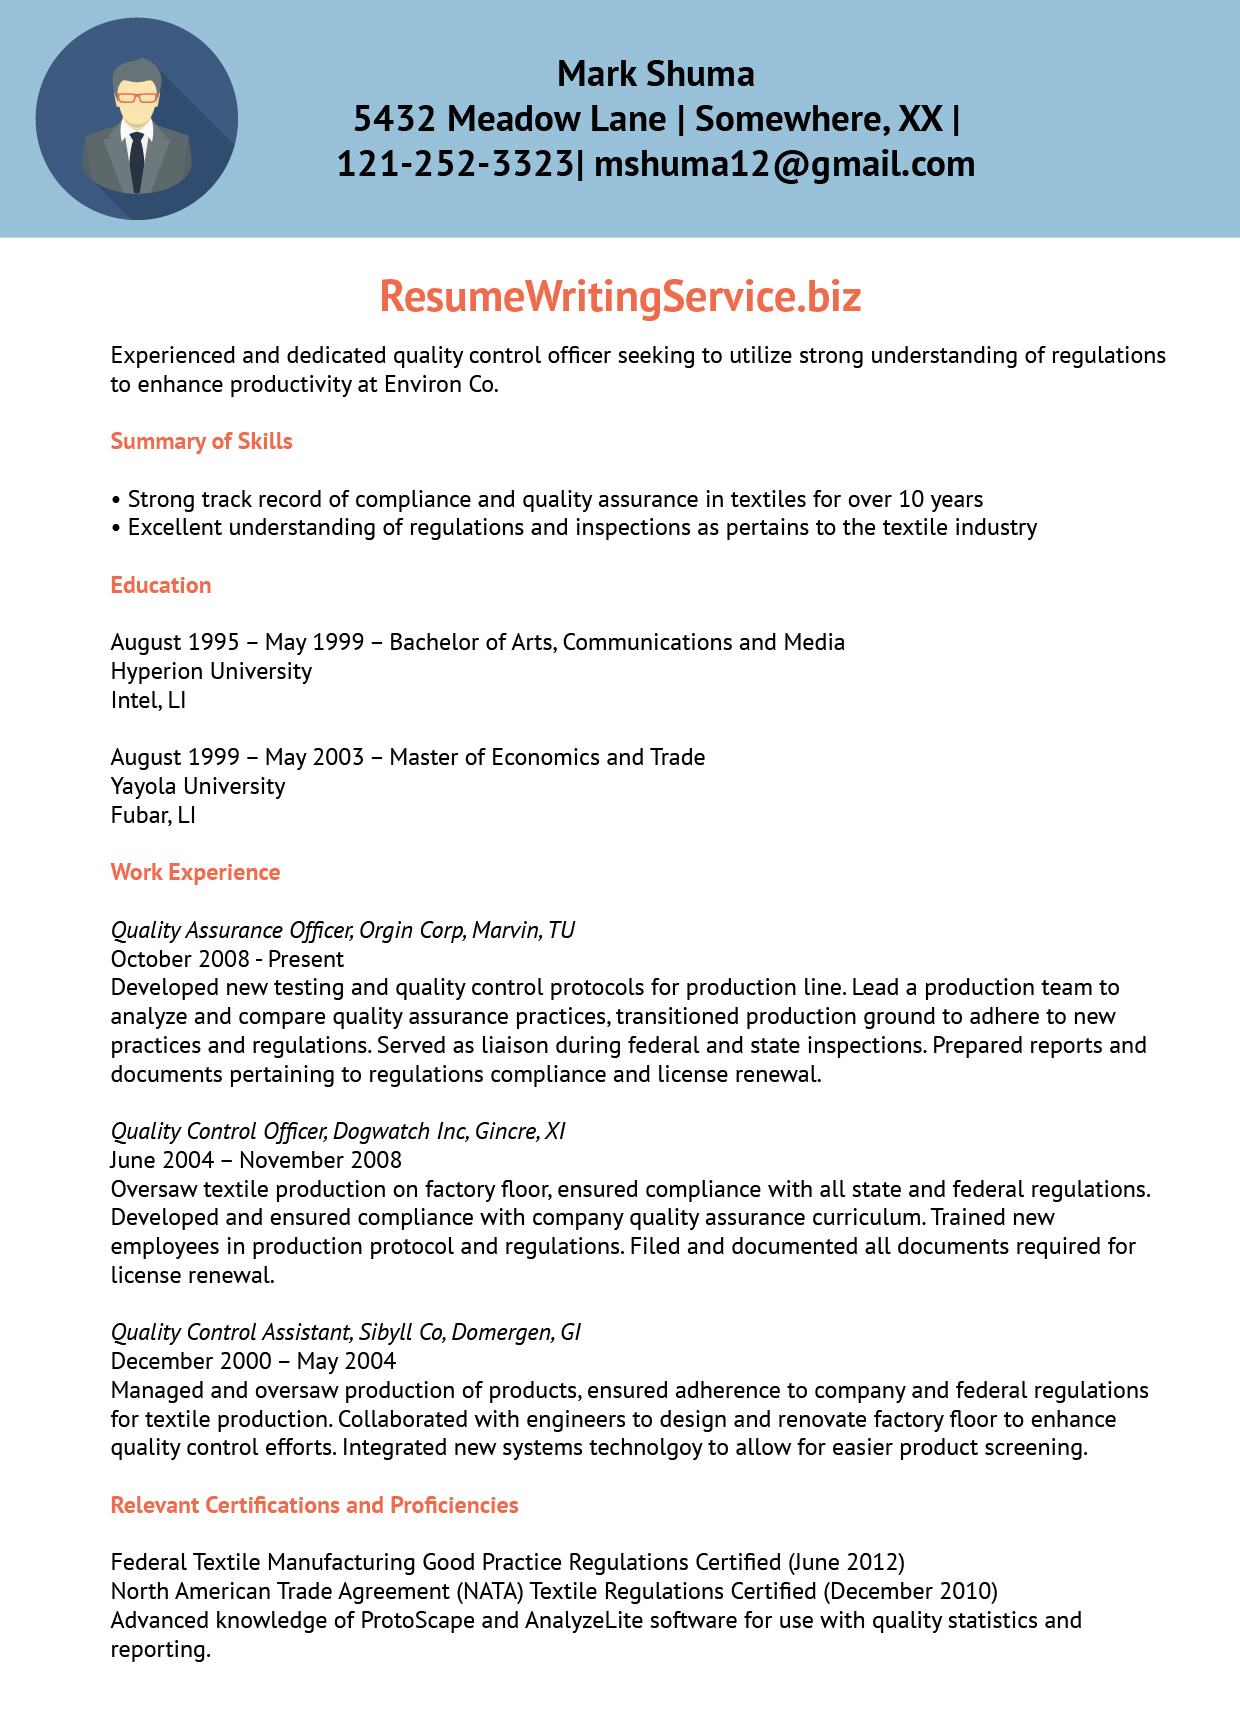 professional work experience resume